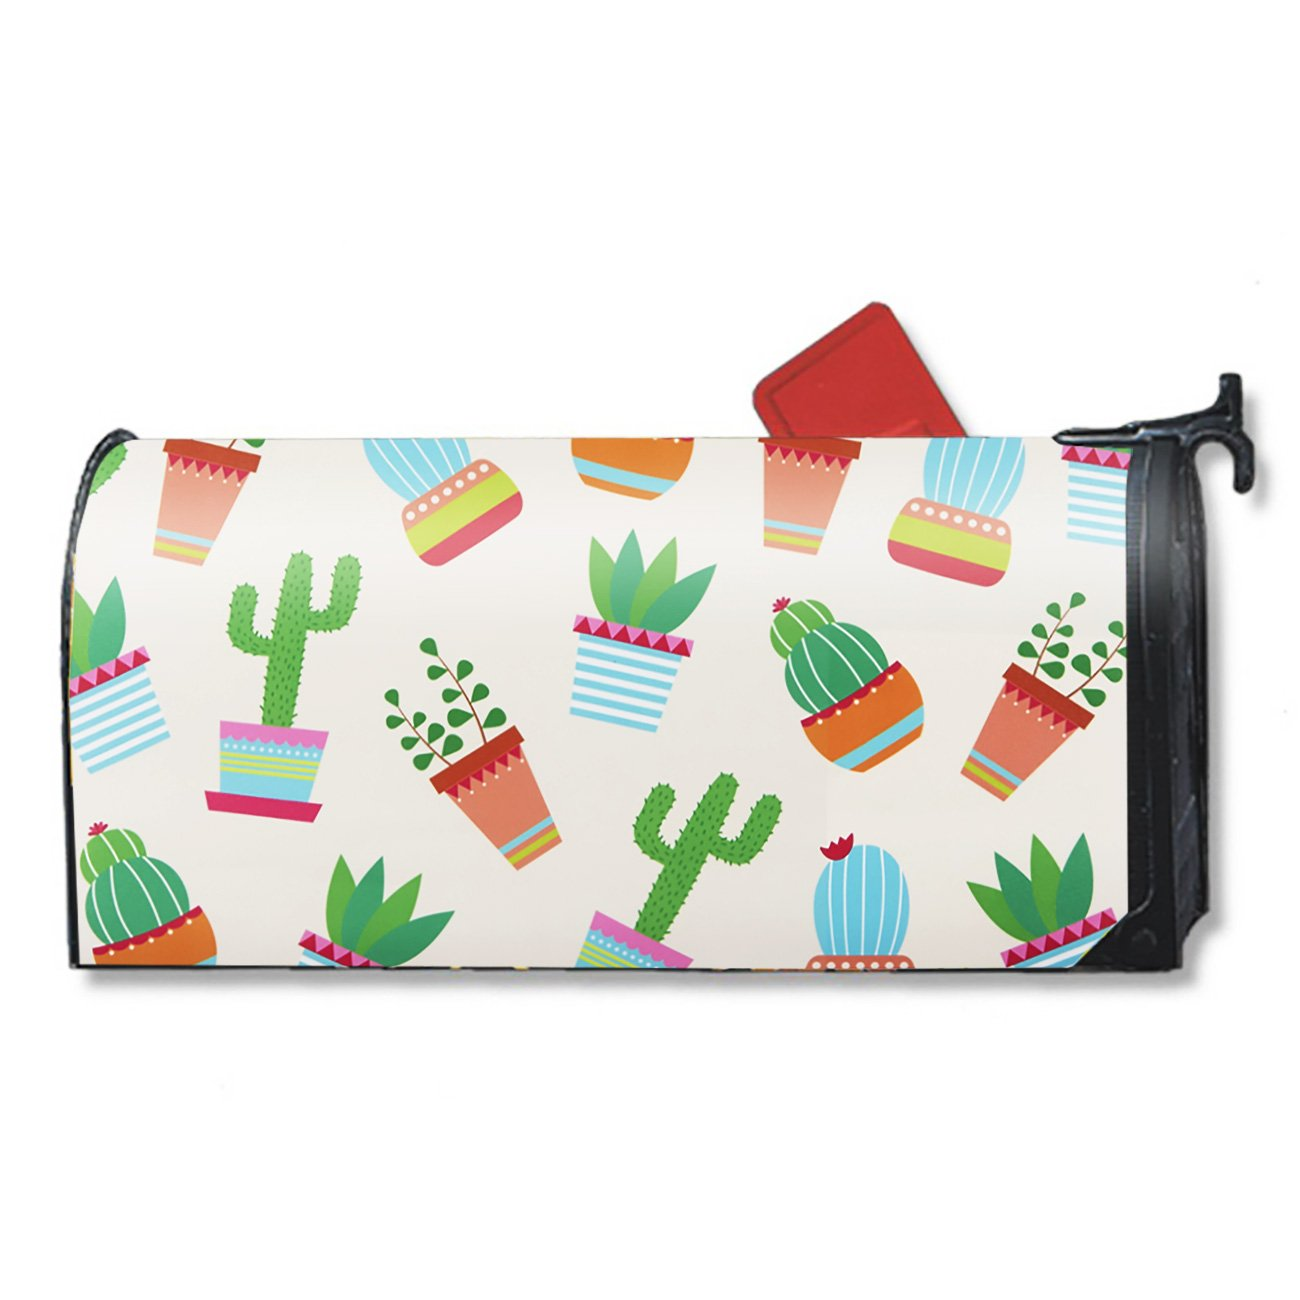 Magnetic Mailbox Cover - Spring Summer Themed, Decorative Vinyl Mailbox Wrap for Standard Size, Cactus Pattern Design - Rural Green Plants - Multicolor, 17.25 x 20.75 inches